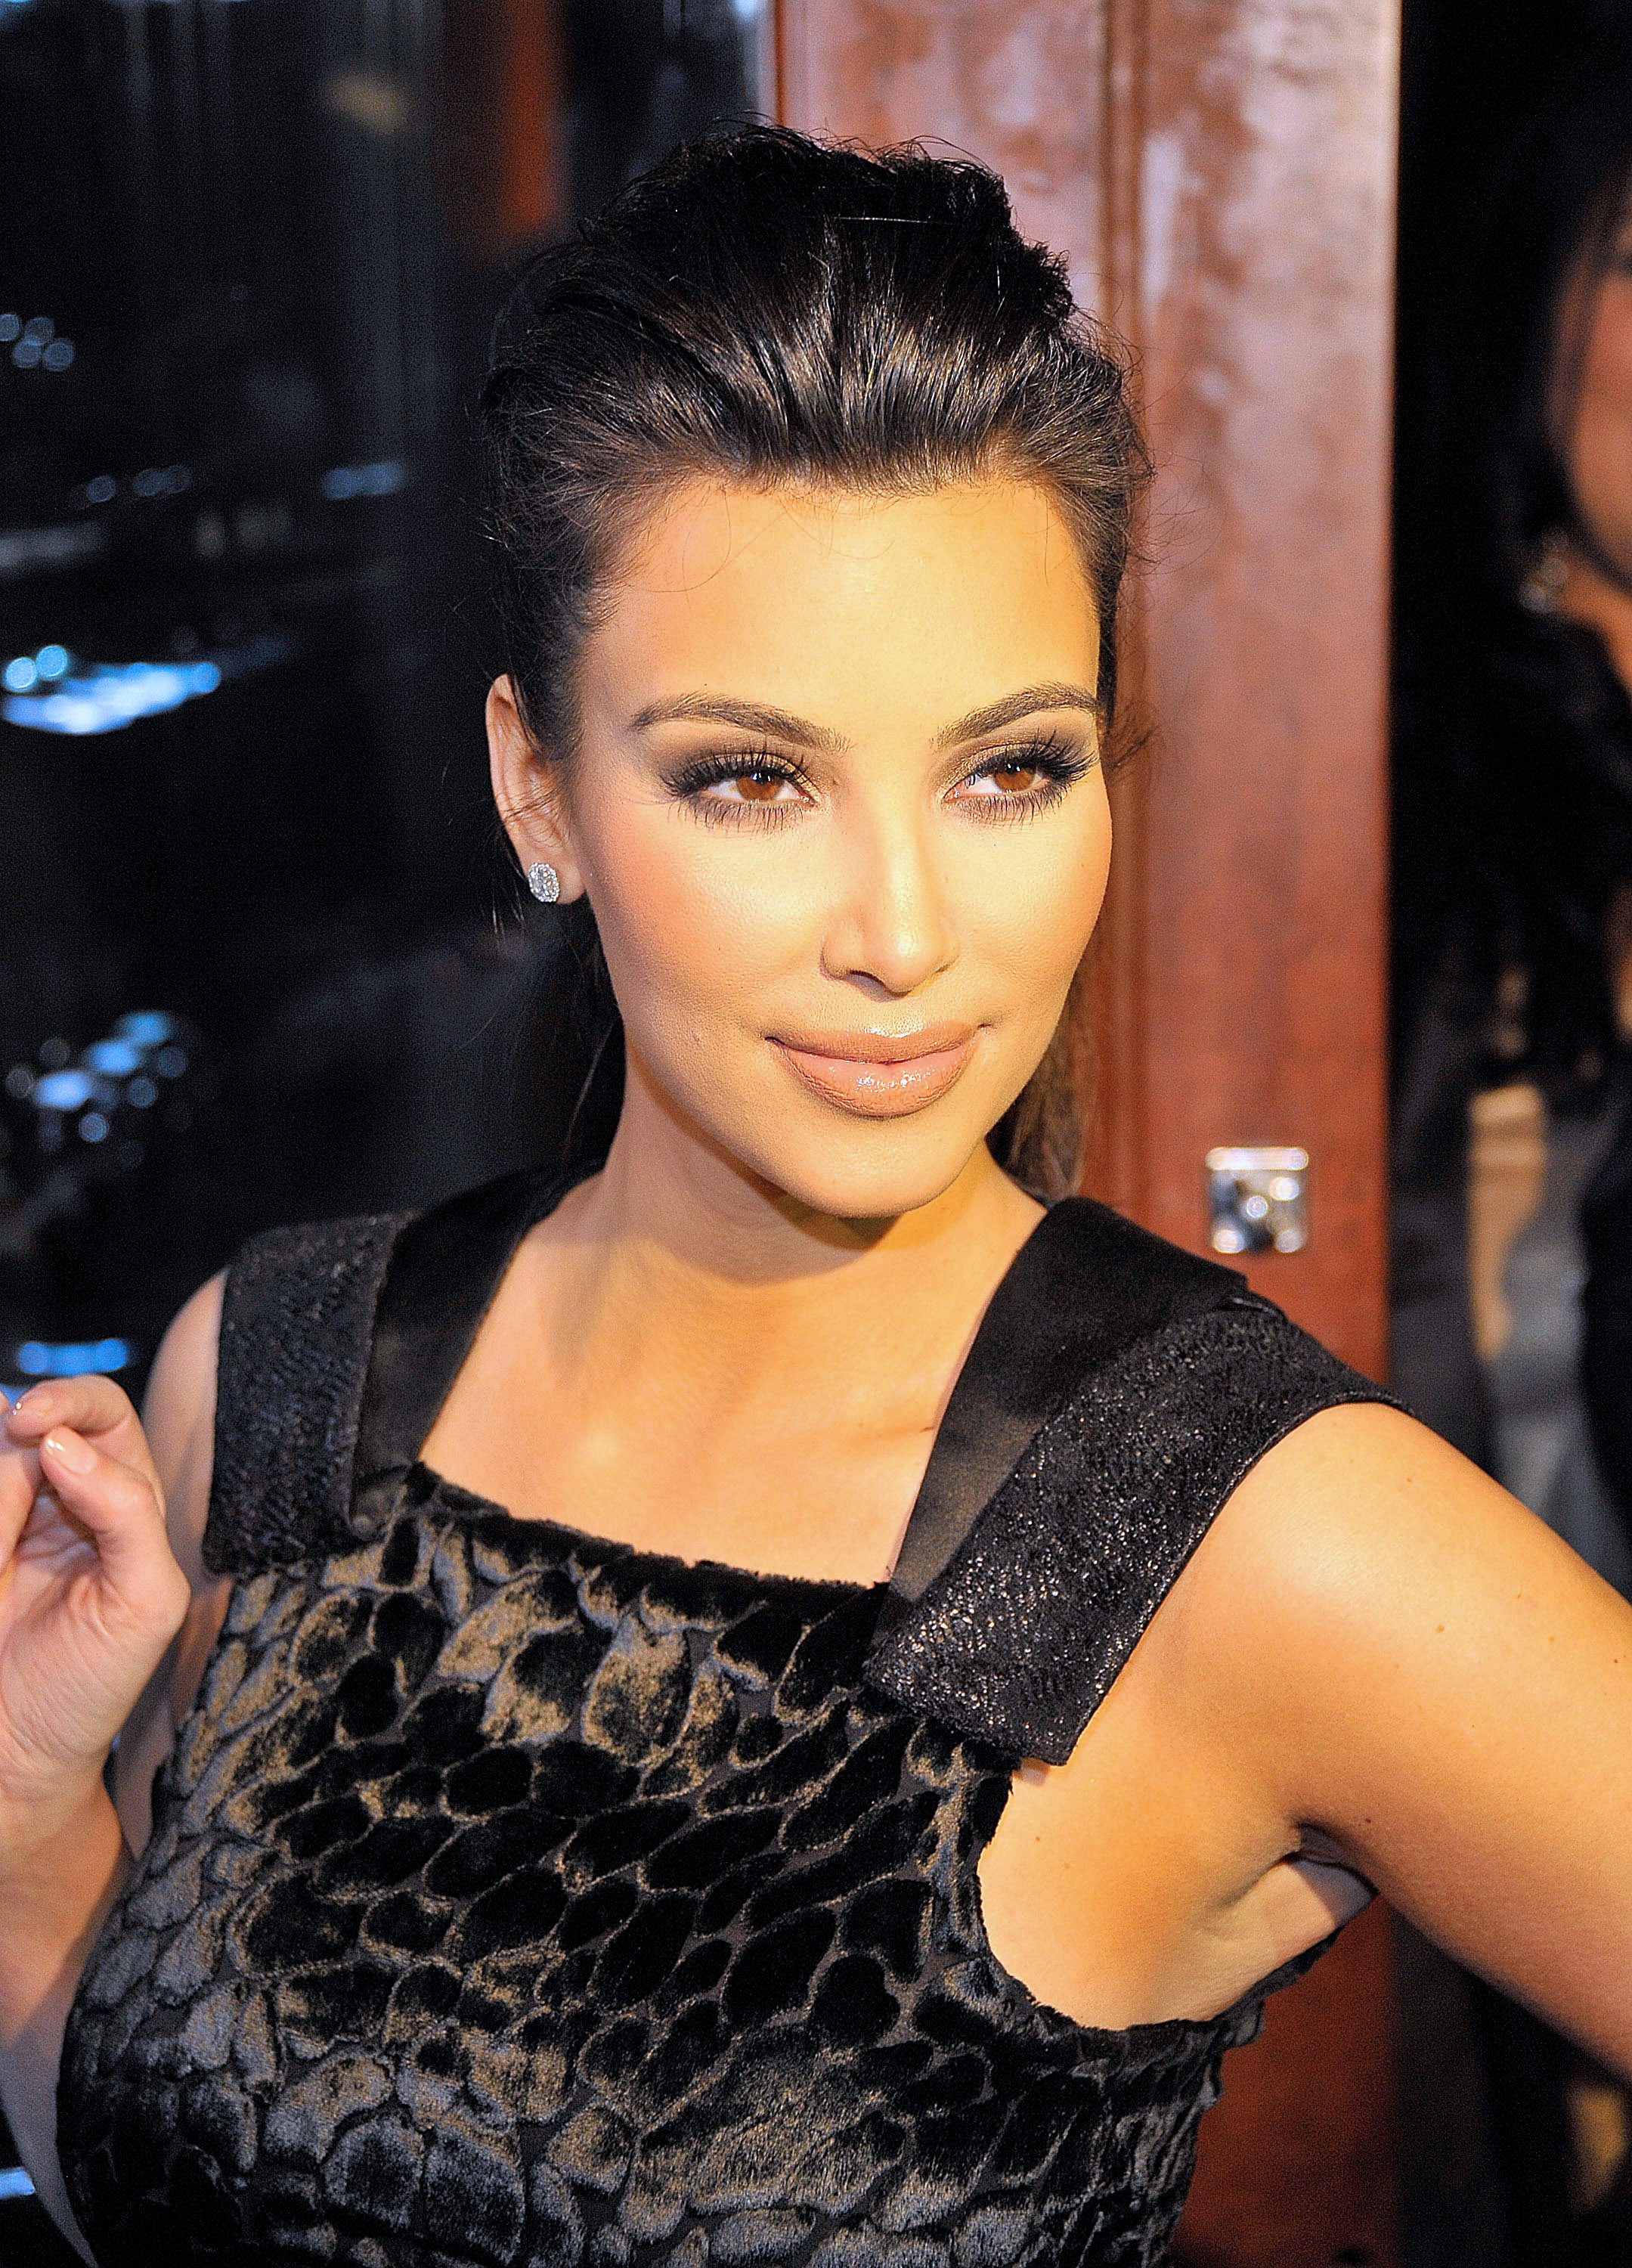 levels of dating in kim kardashian Keeping up with the kardashians recap: surrogacy exposed kim kardashian's surrogate's that added level of damage control on top of whatever she personally.